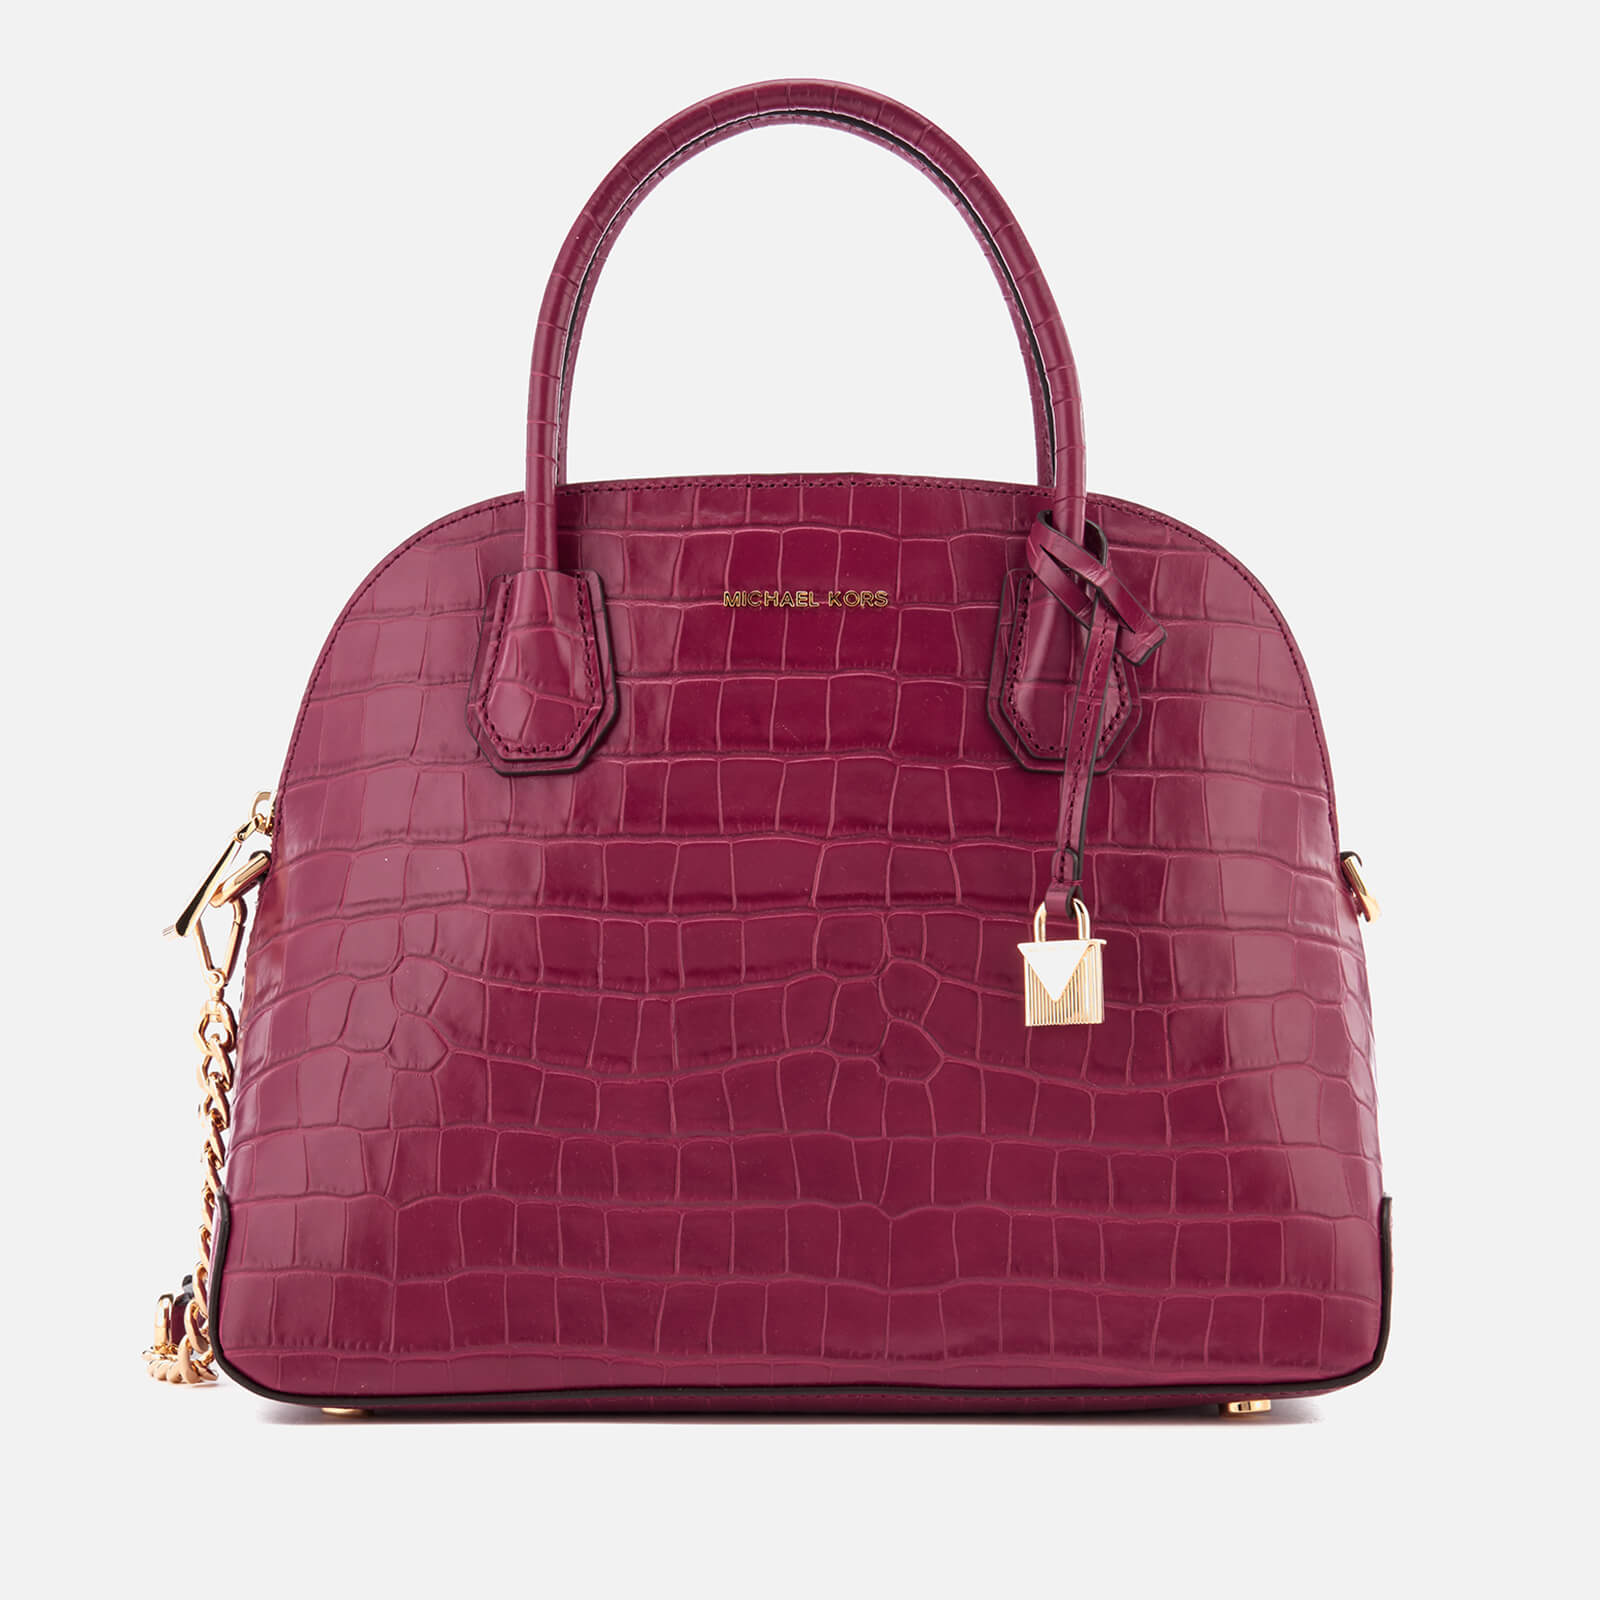 c389e3272797c7 MICHAEL MICHAEL KORS Women's Mercer Large Dome Satchel - Mulberry - Free UK  Delivery over £50